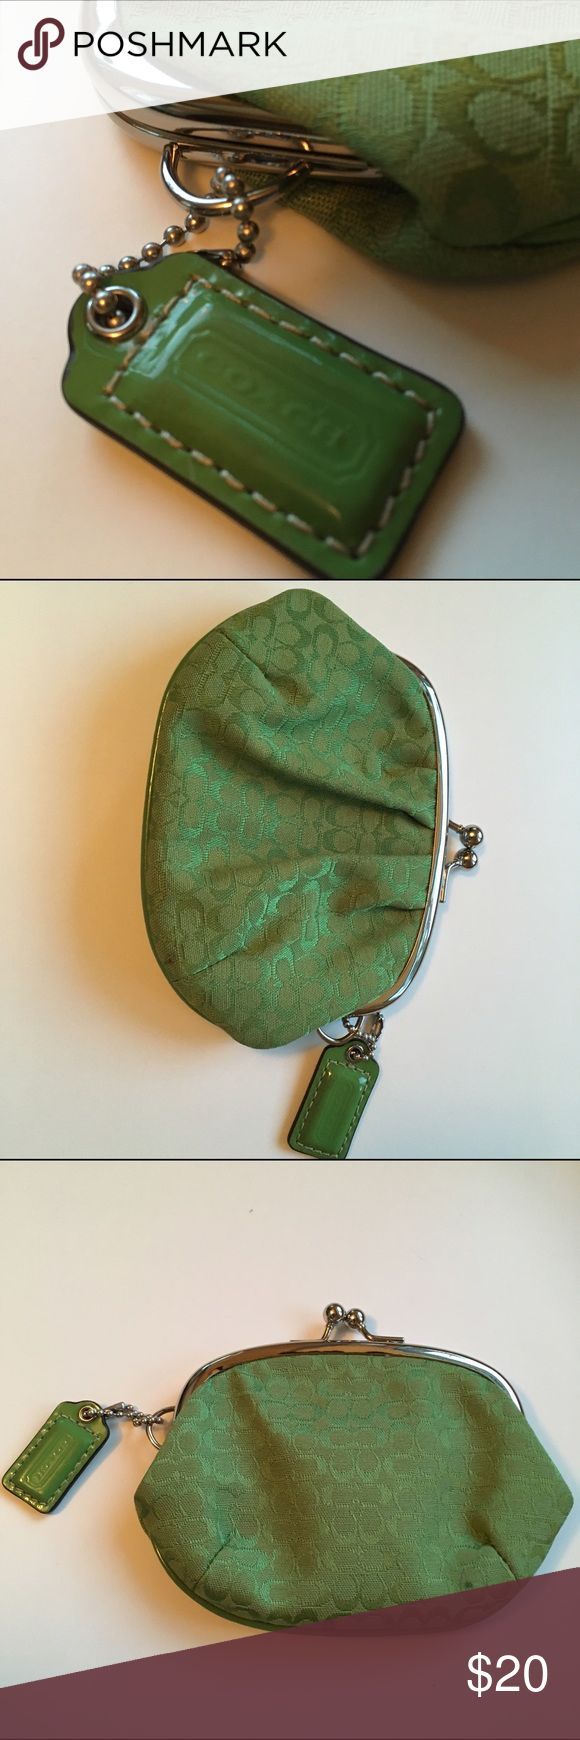 Coach - Coin purse Bright green with signature print. Excellent condition as it was used minimally. Coach Bags Wallets